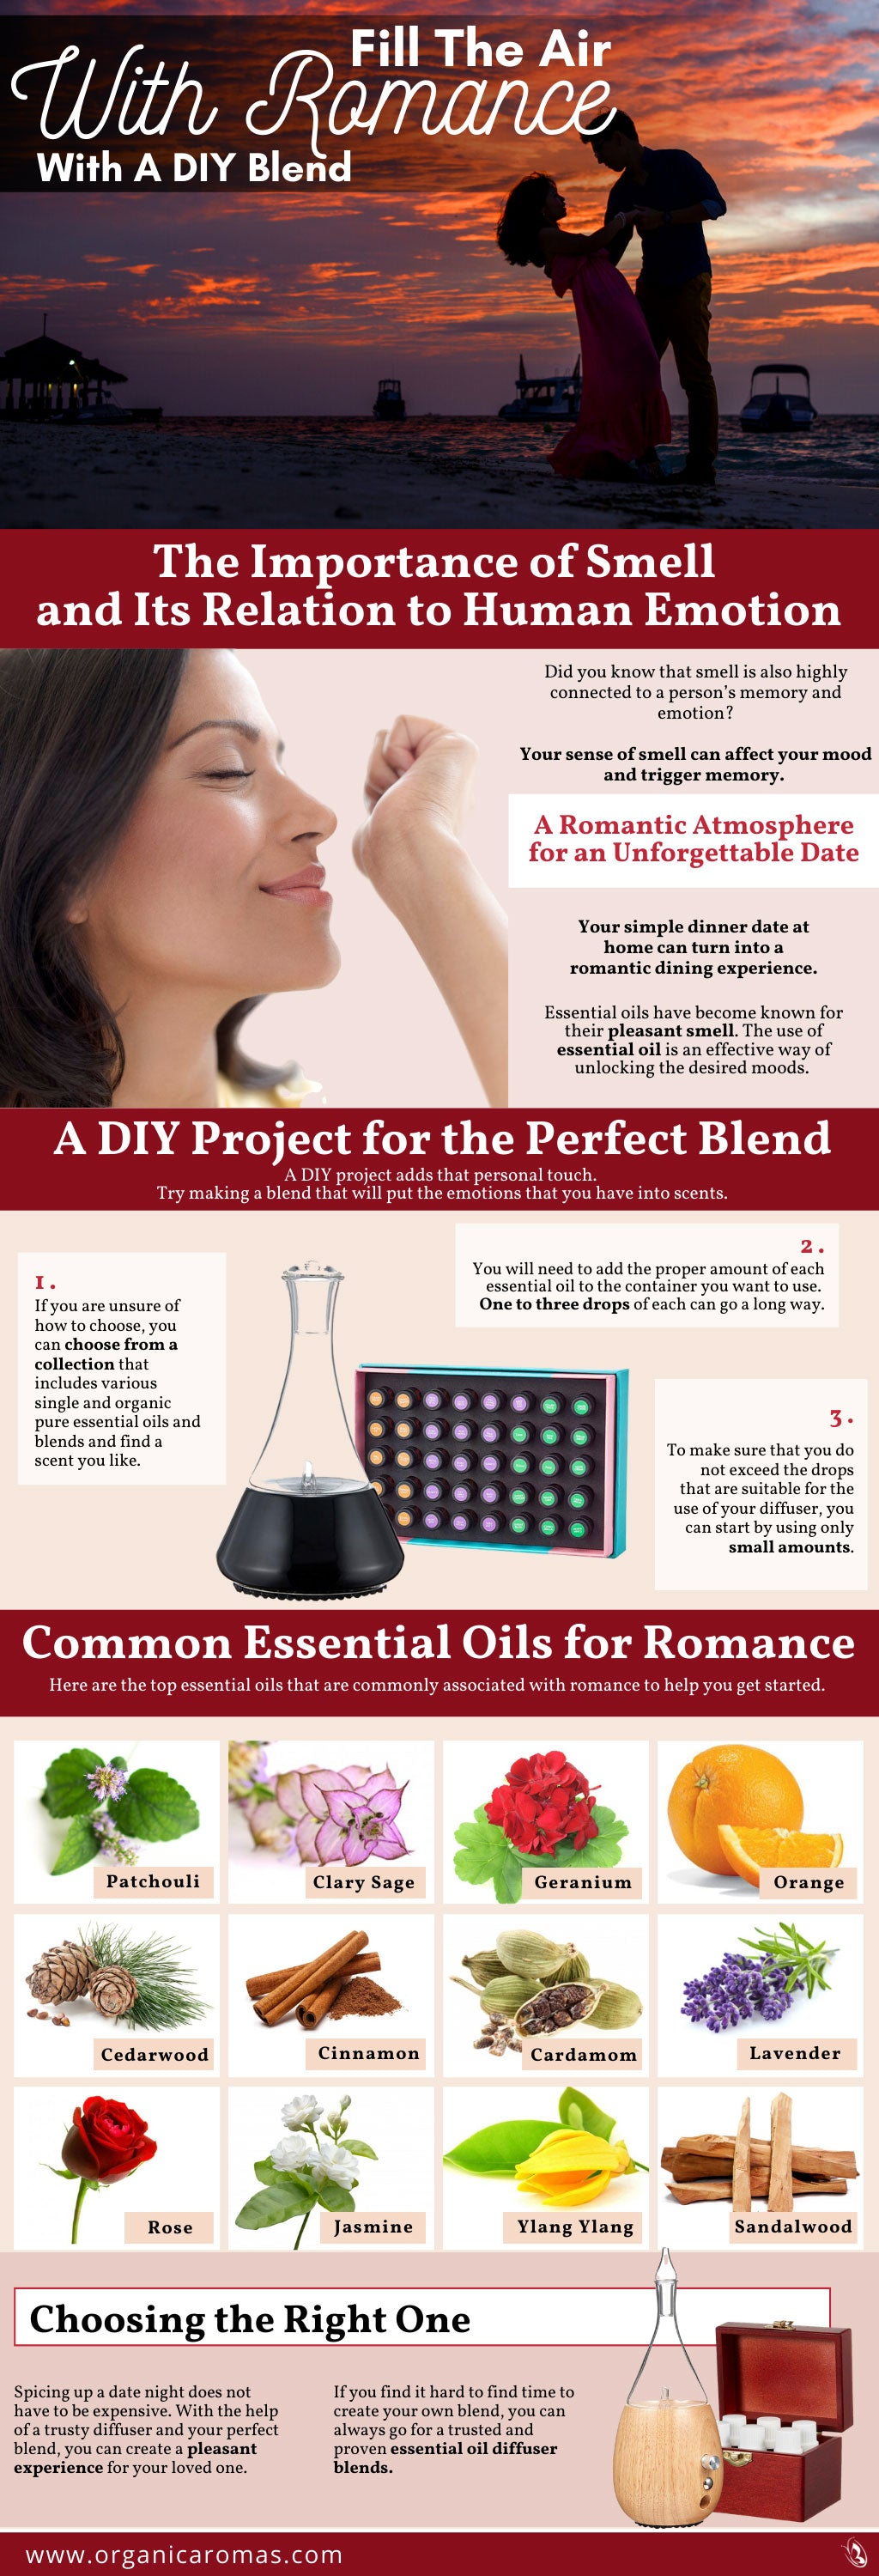 Fill The Air With Romance With A DIY Blend